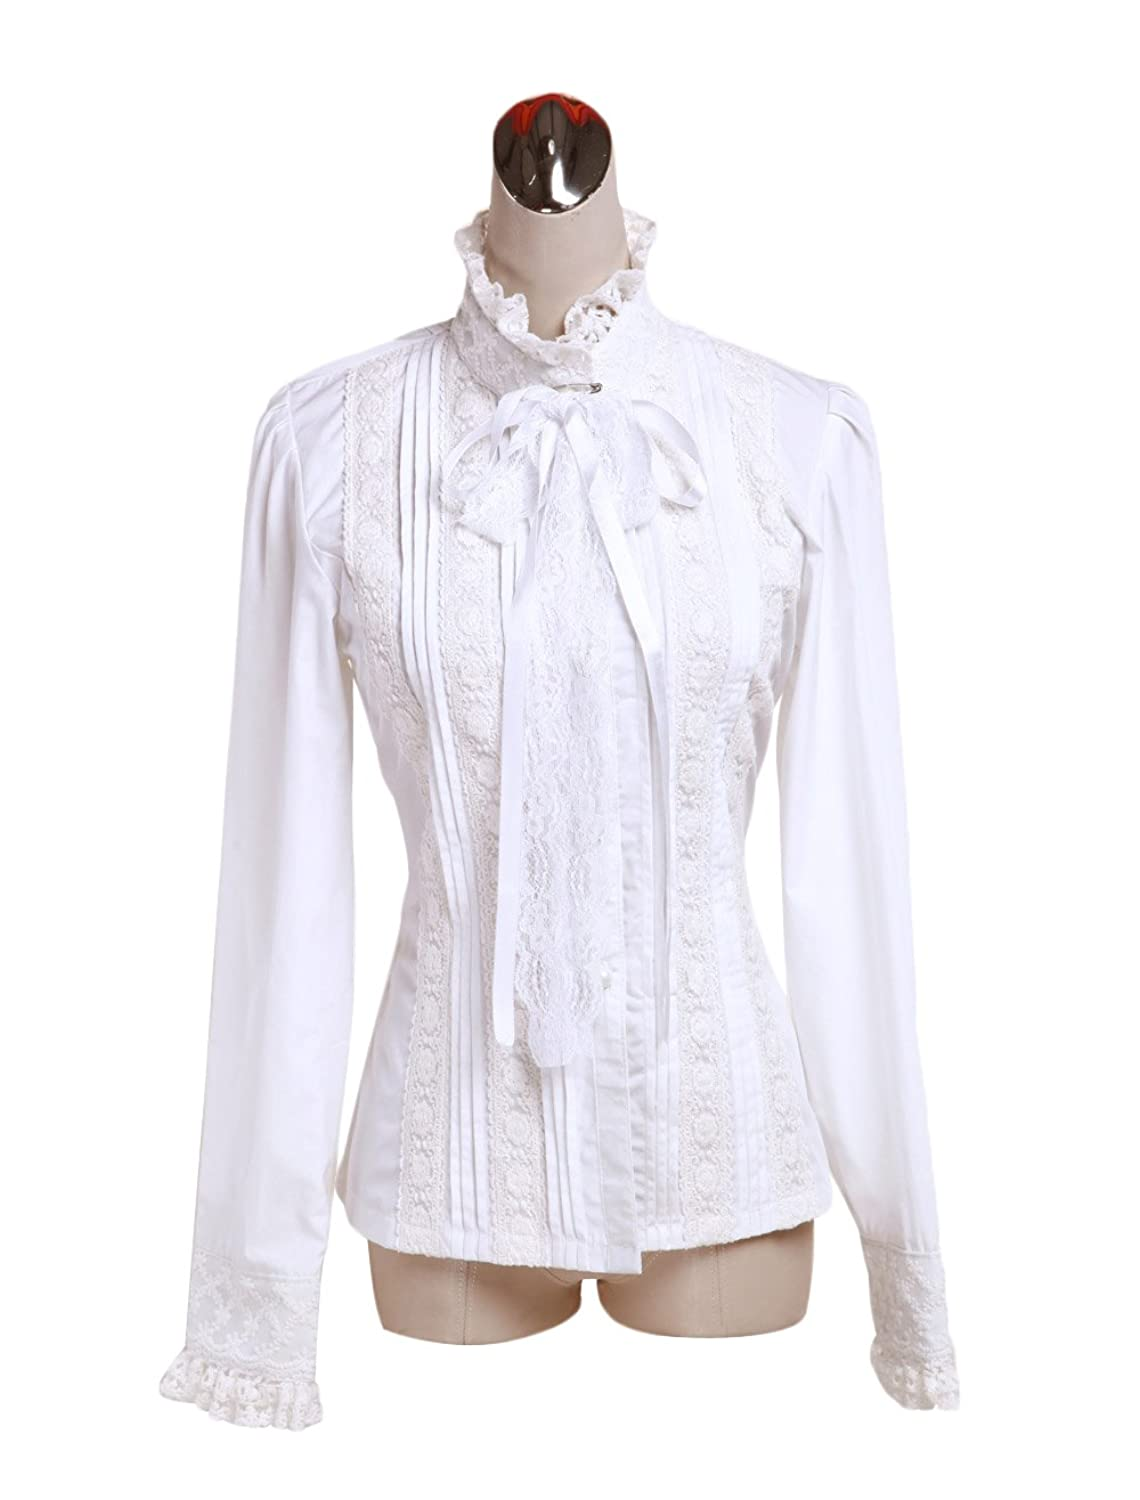 Cotton White Lace Ruffle Gothic Standing Collar Victorian Shirt Blouse $42.99 AT vintagedancer.com